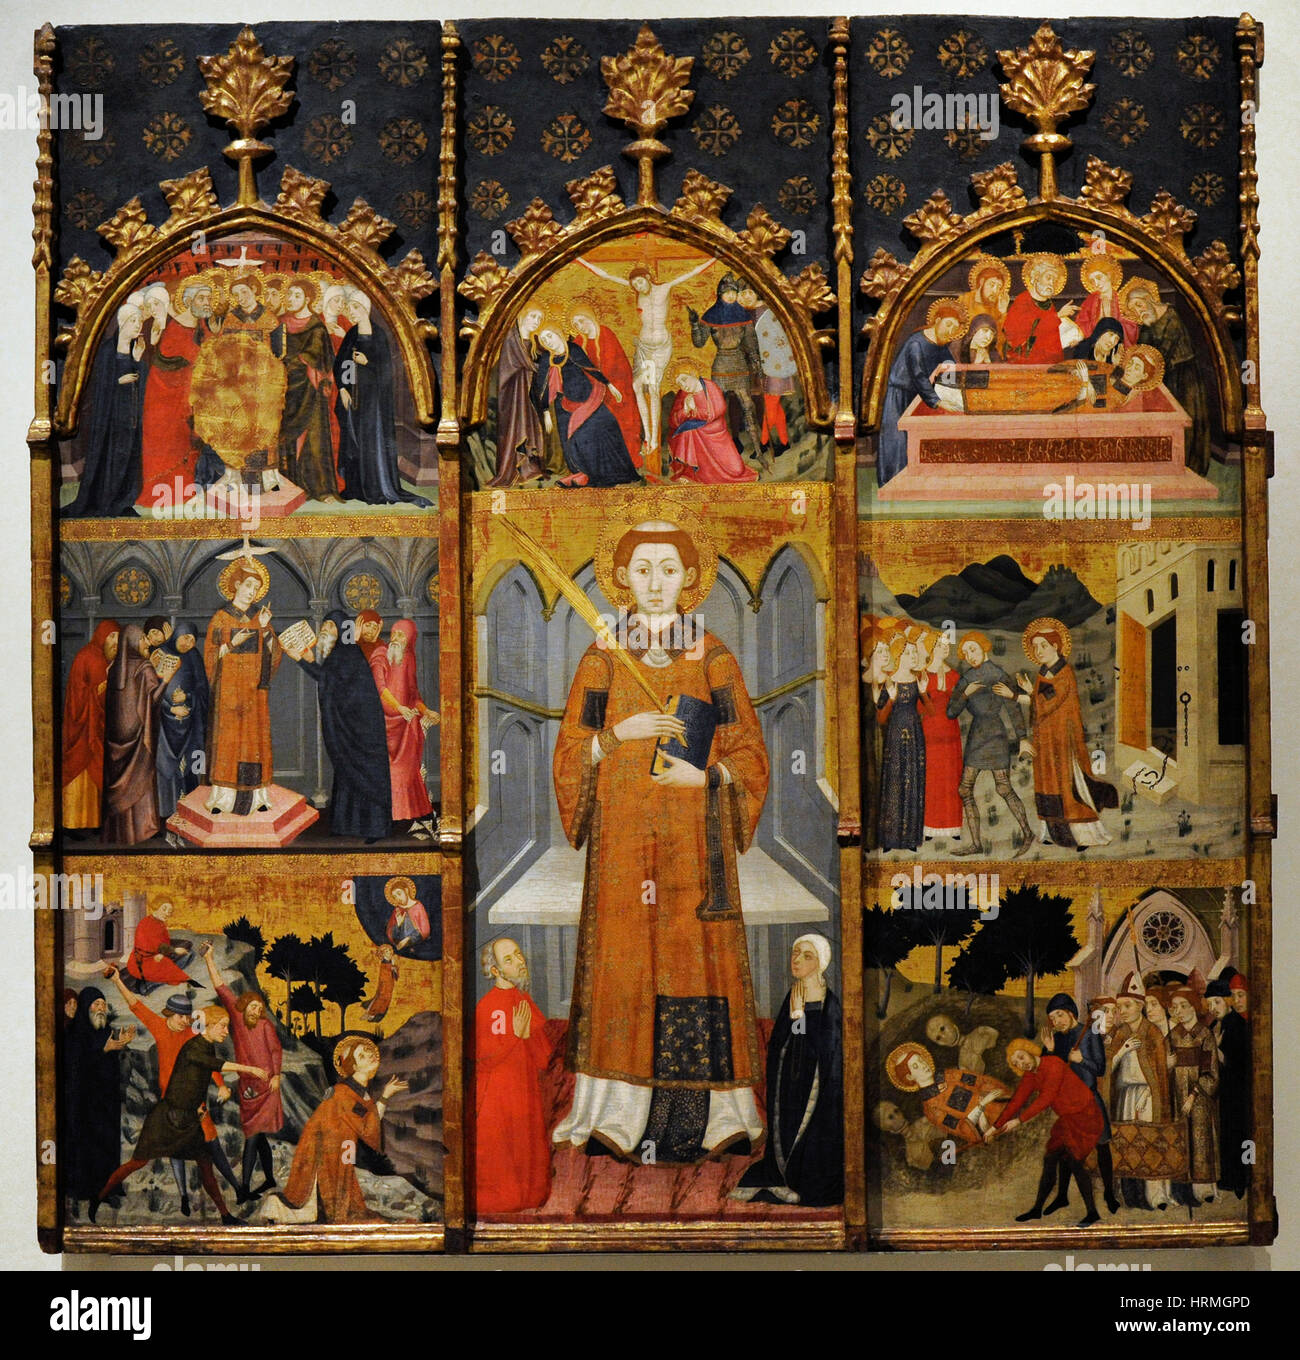 Jaume Serra (active in Barcelona 1358-1389/1395). Spanish painter. Altarpiece of Saint Stephen, ca. 1385. From the - Stock Image